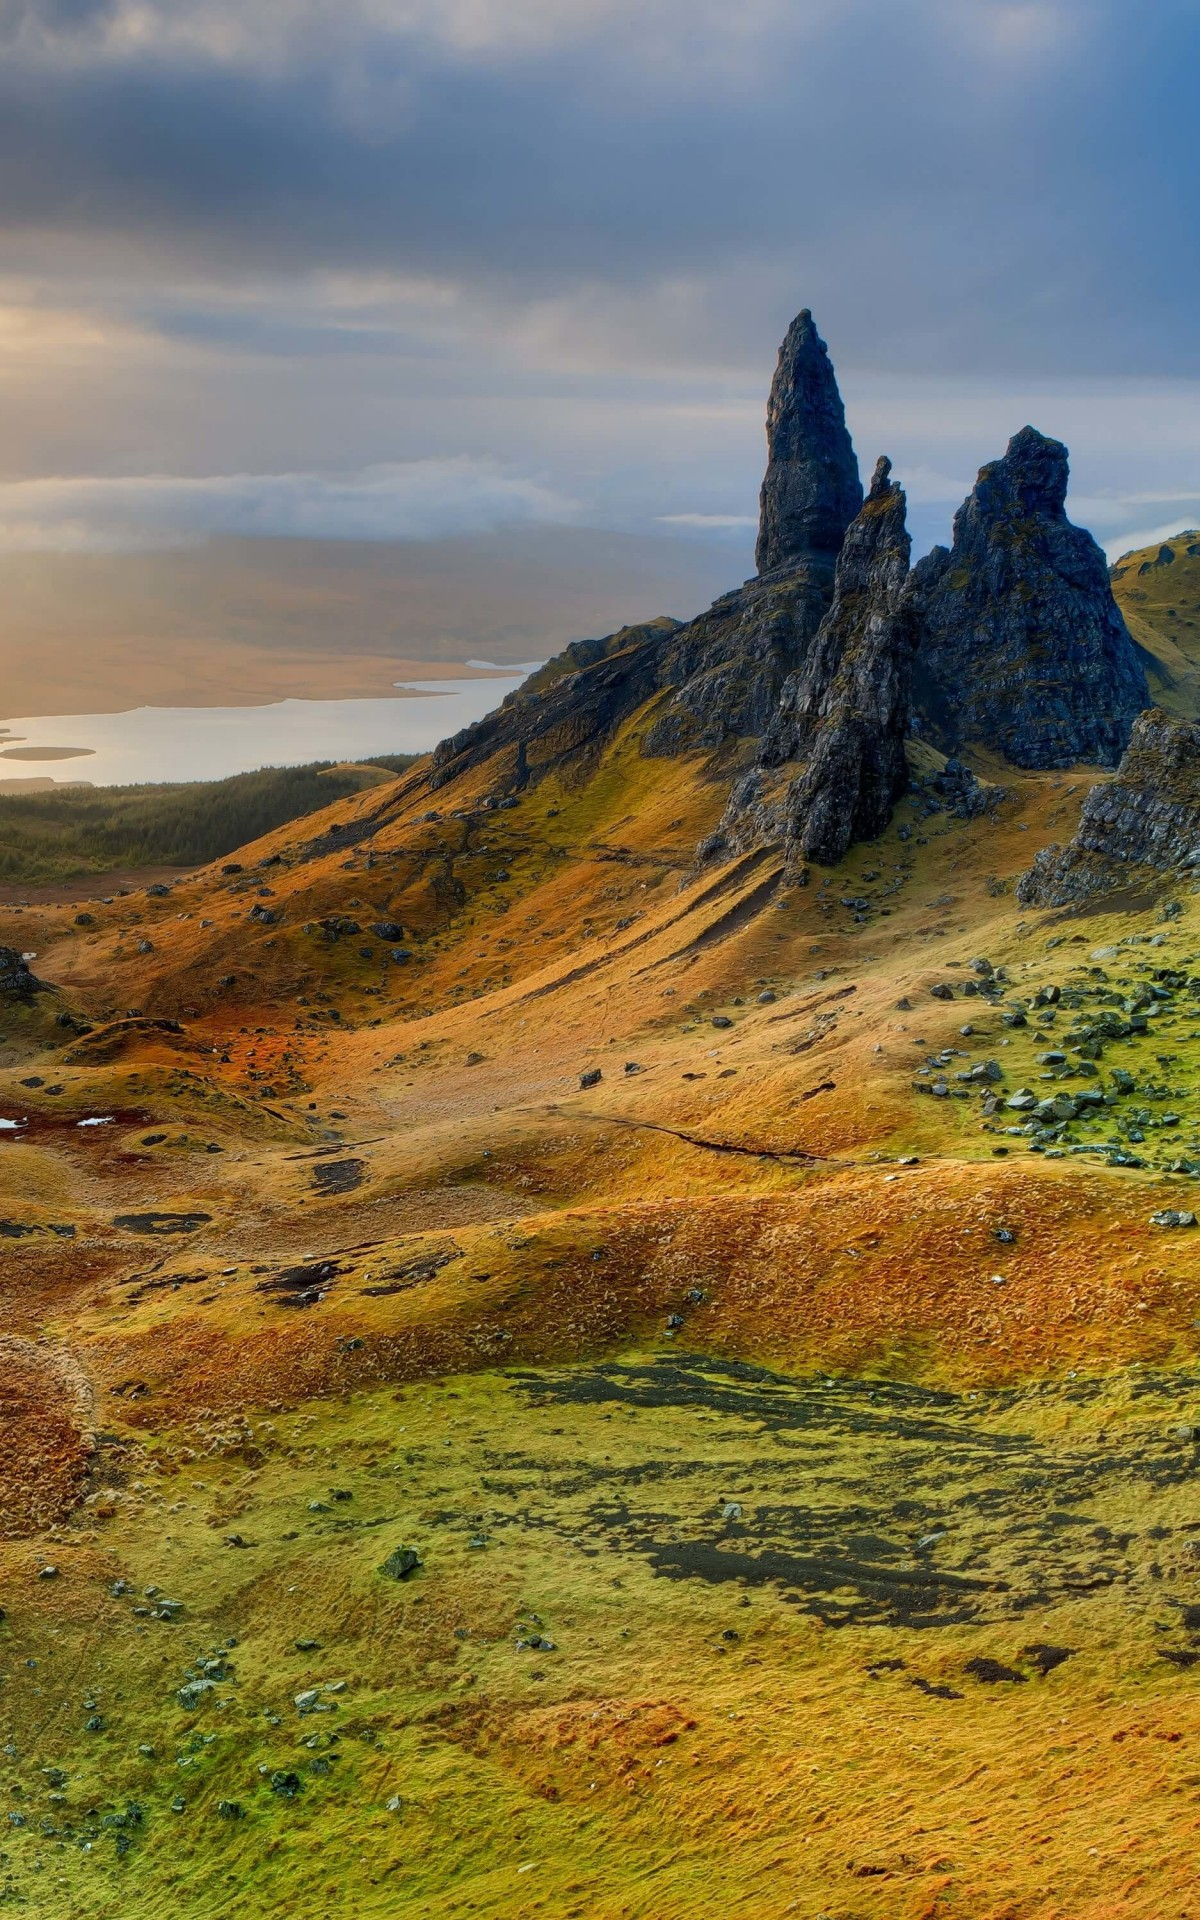 The Old Man of Storr, Isle of Skye, Scotland Wallpaper for Amazon Kindle Fire HDX